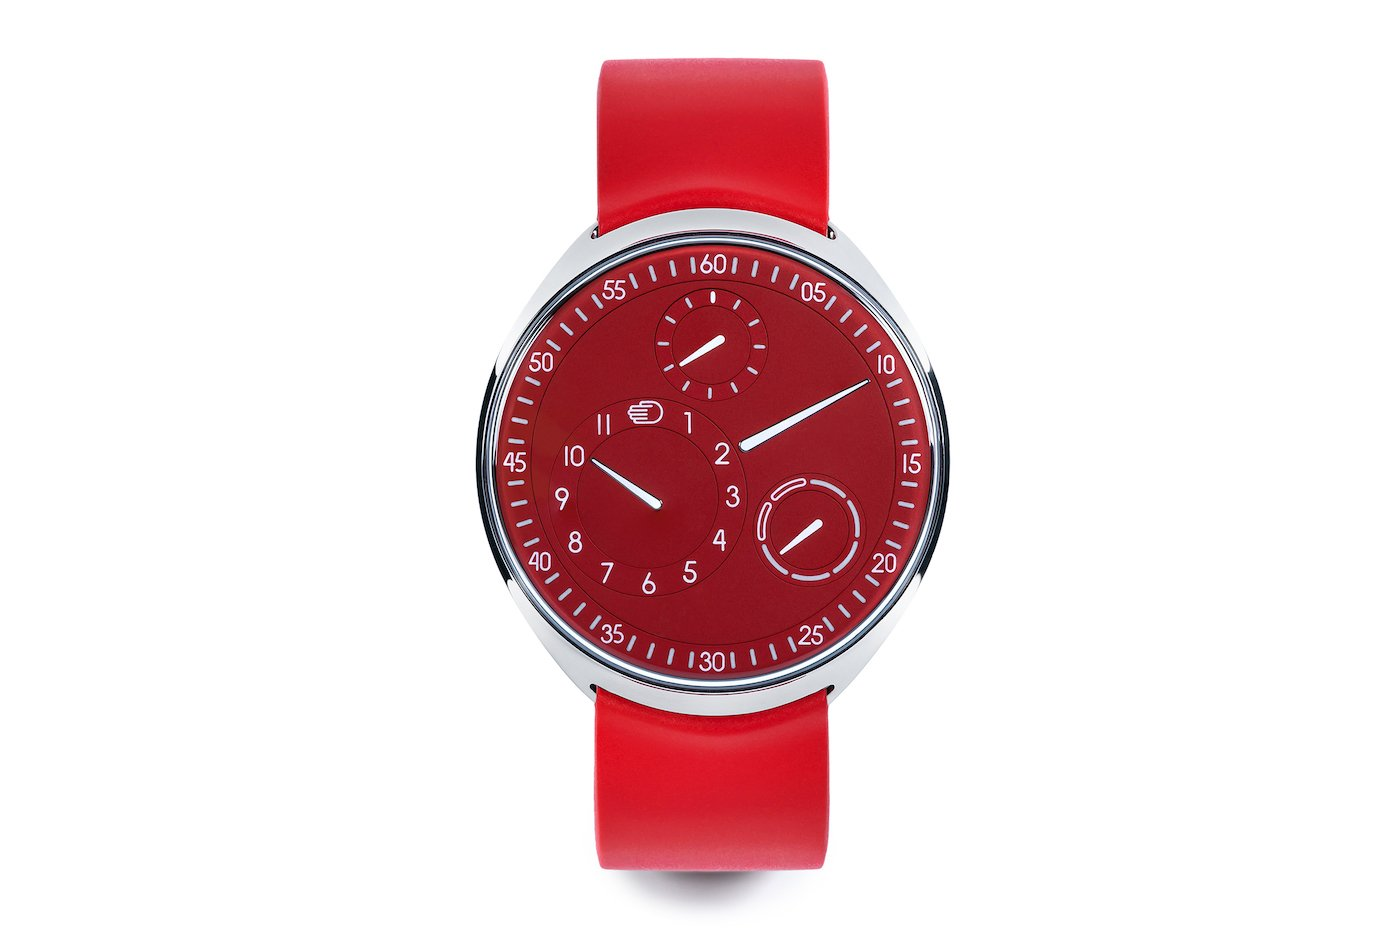 Presenting the new Ressence Type 1RED